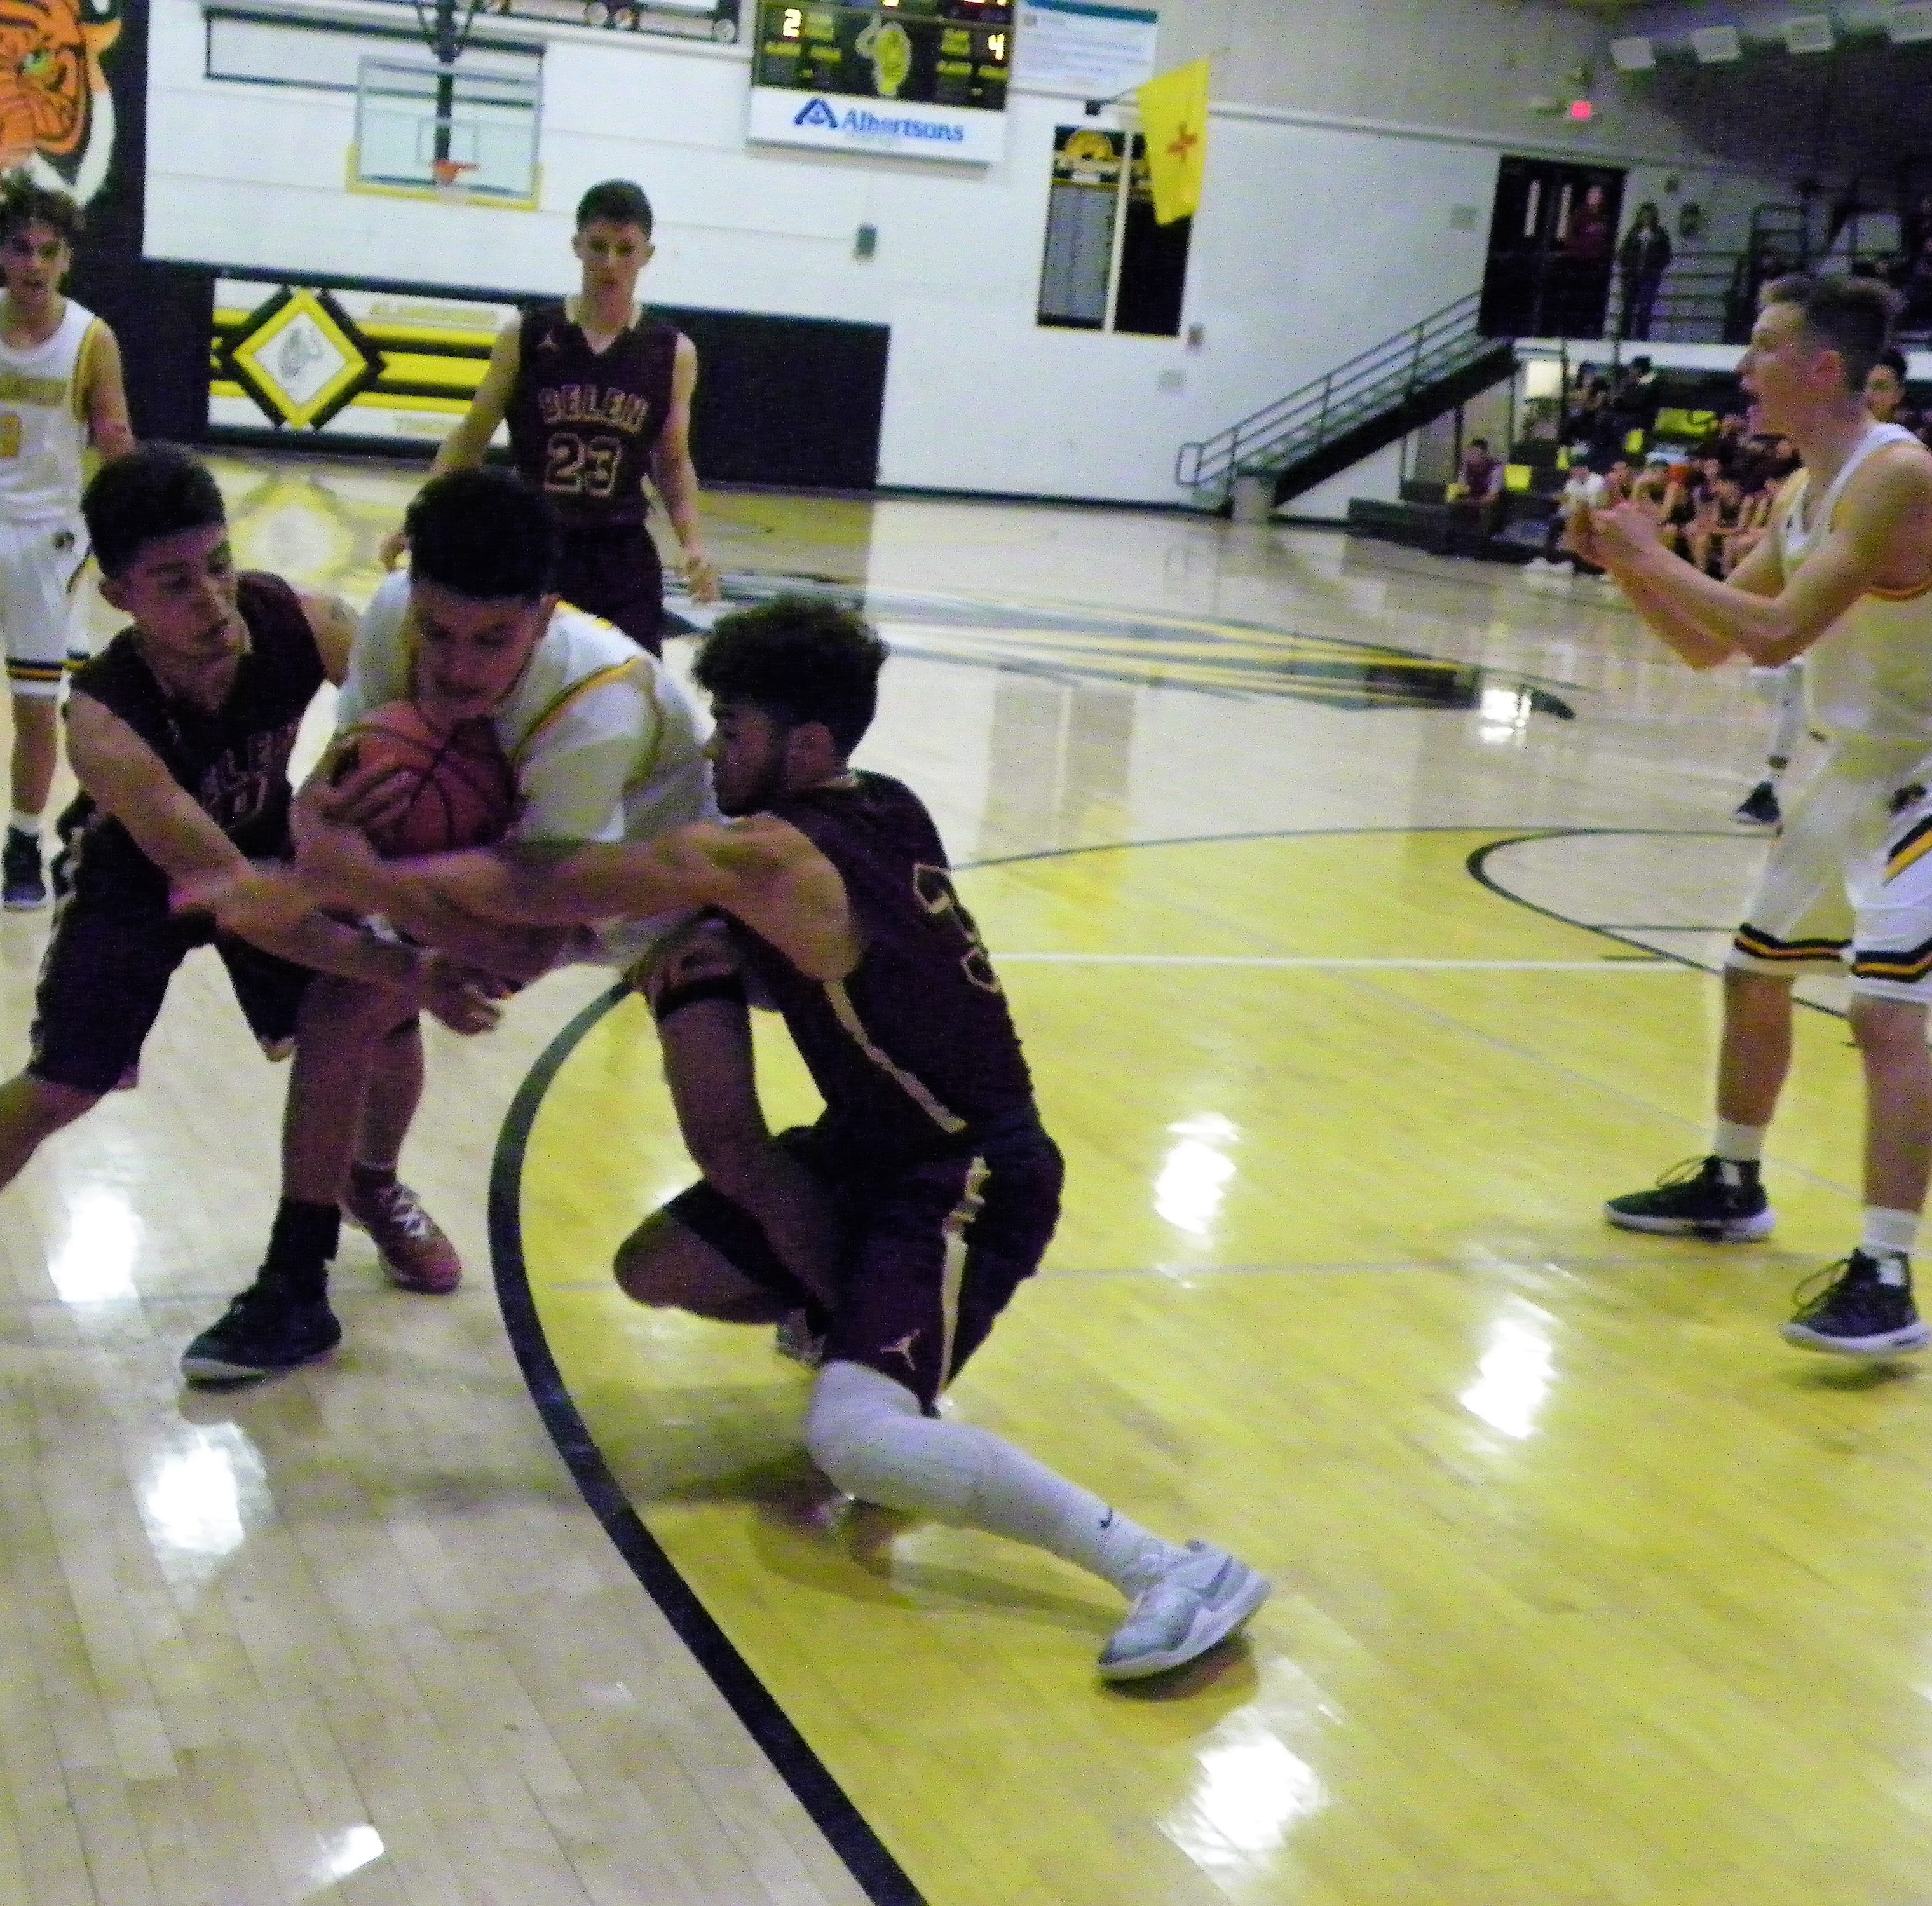 Though the Alamogordo Tigers ultimately lost to Belen Eagles in the first game of the season, head coach James Voight said the young team is eager to fight.